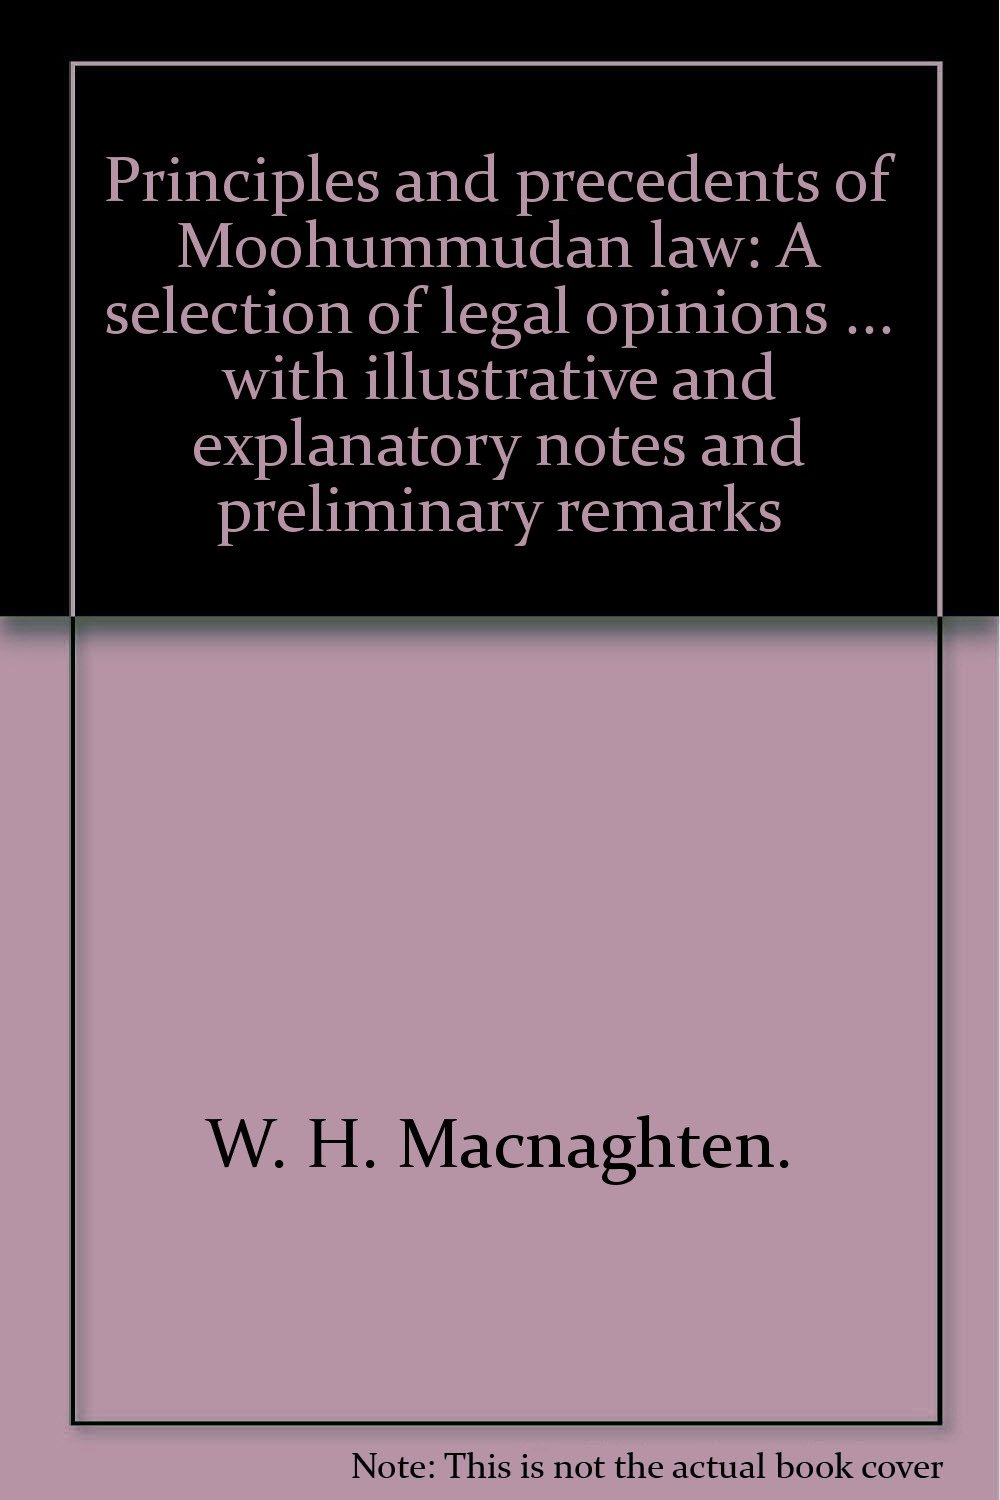 Principles and precedents of Moohummudan law: A selection of legal opinions ... with illustrative and explanatory notes and preliminary remarks